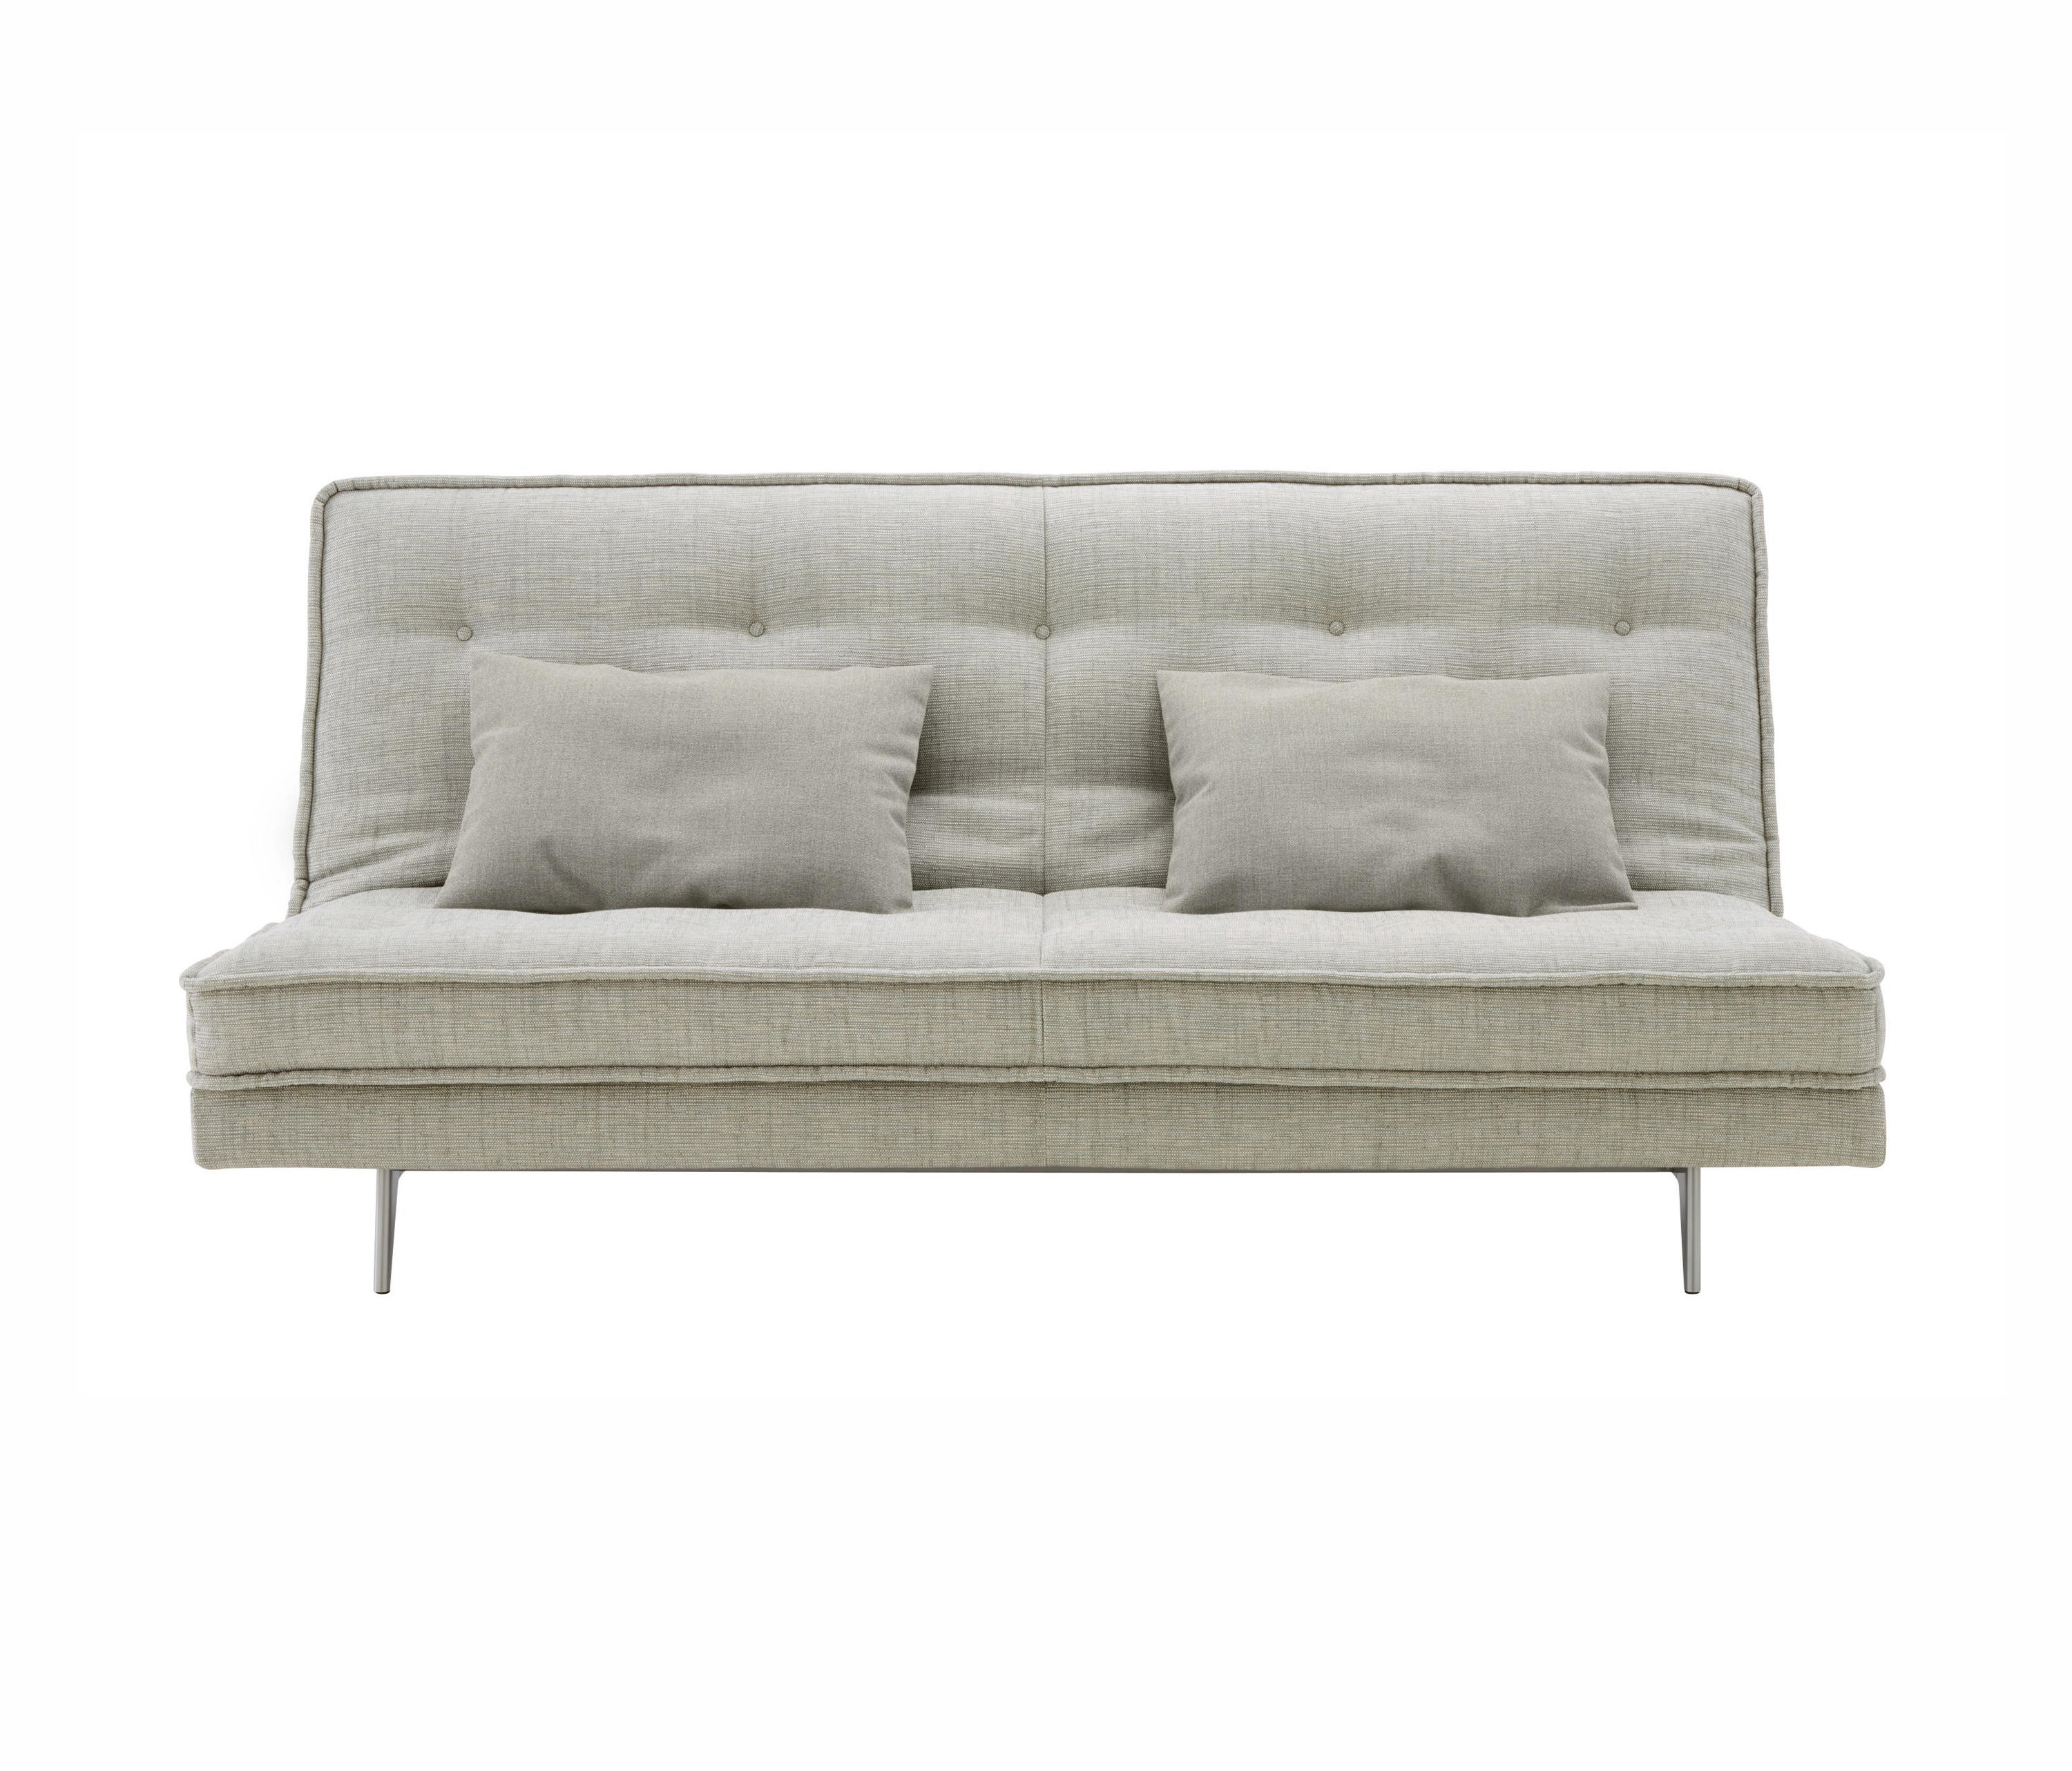 Nomade Express Bed Settee By Ligne Roset Sofas